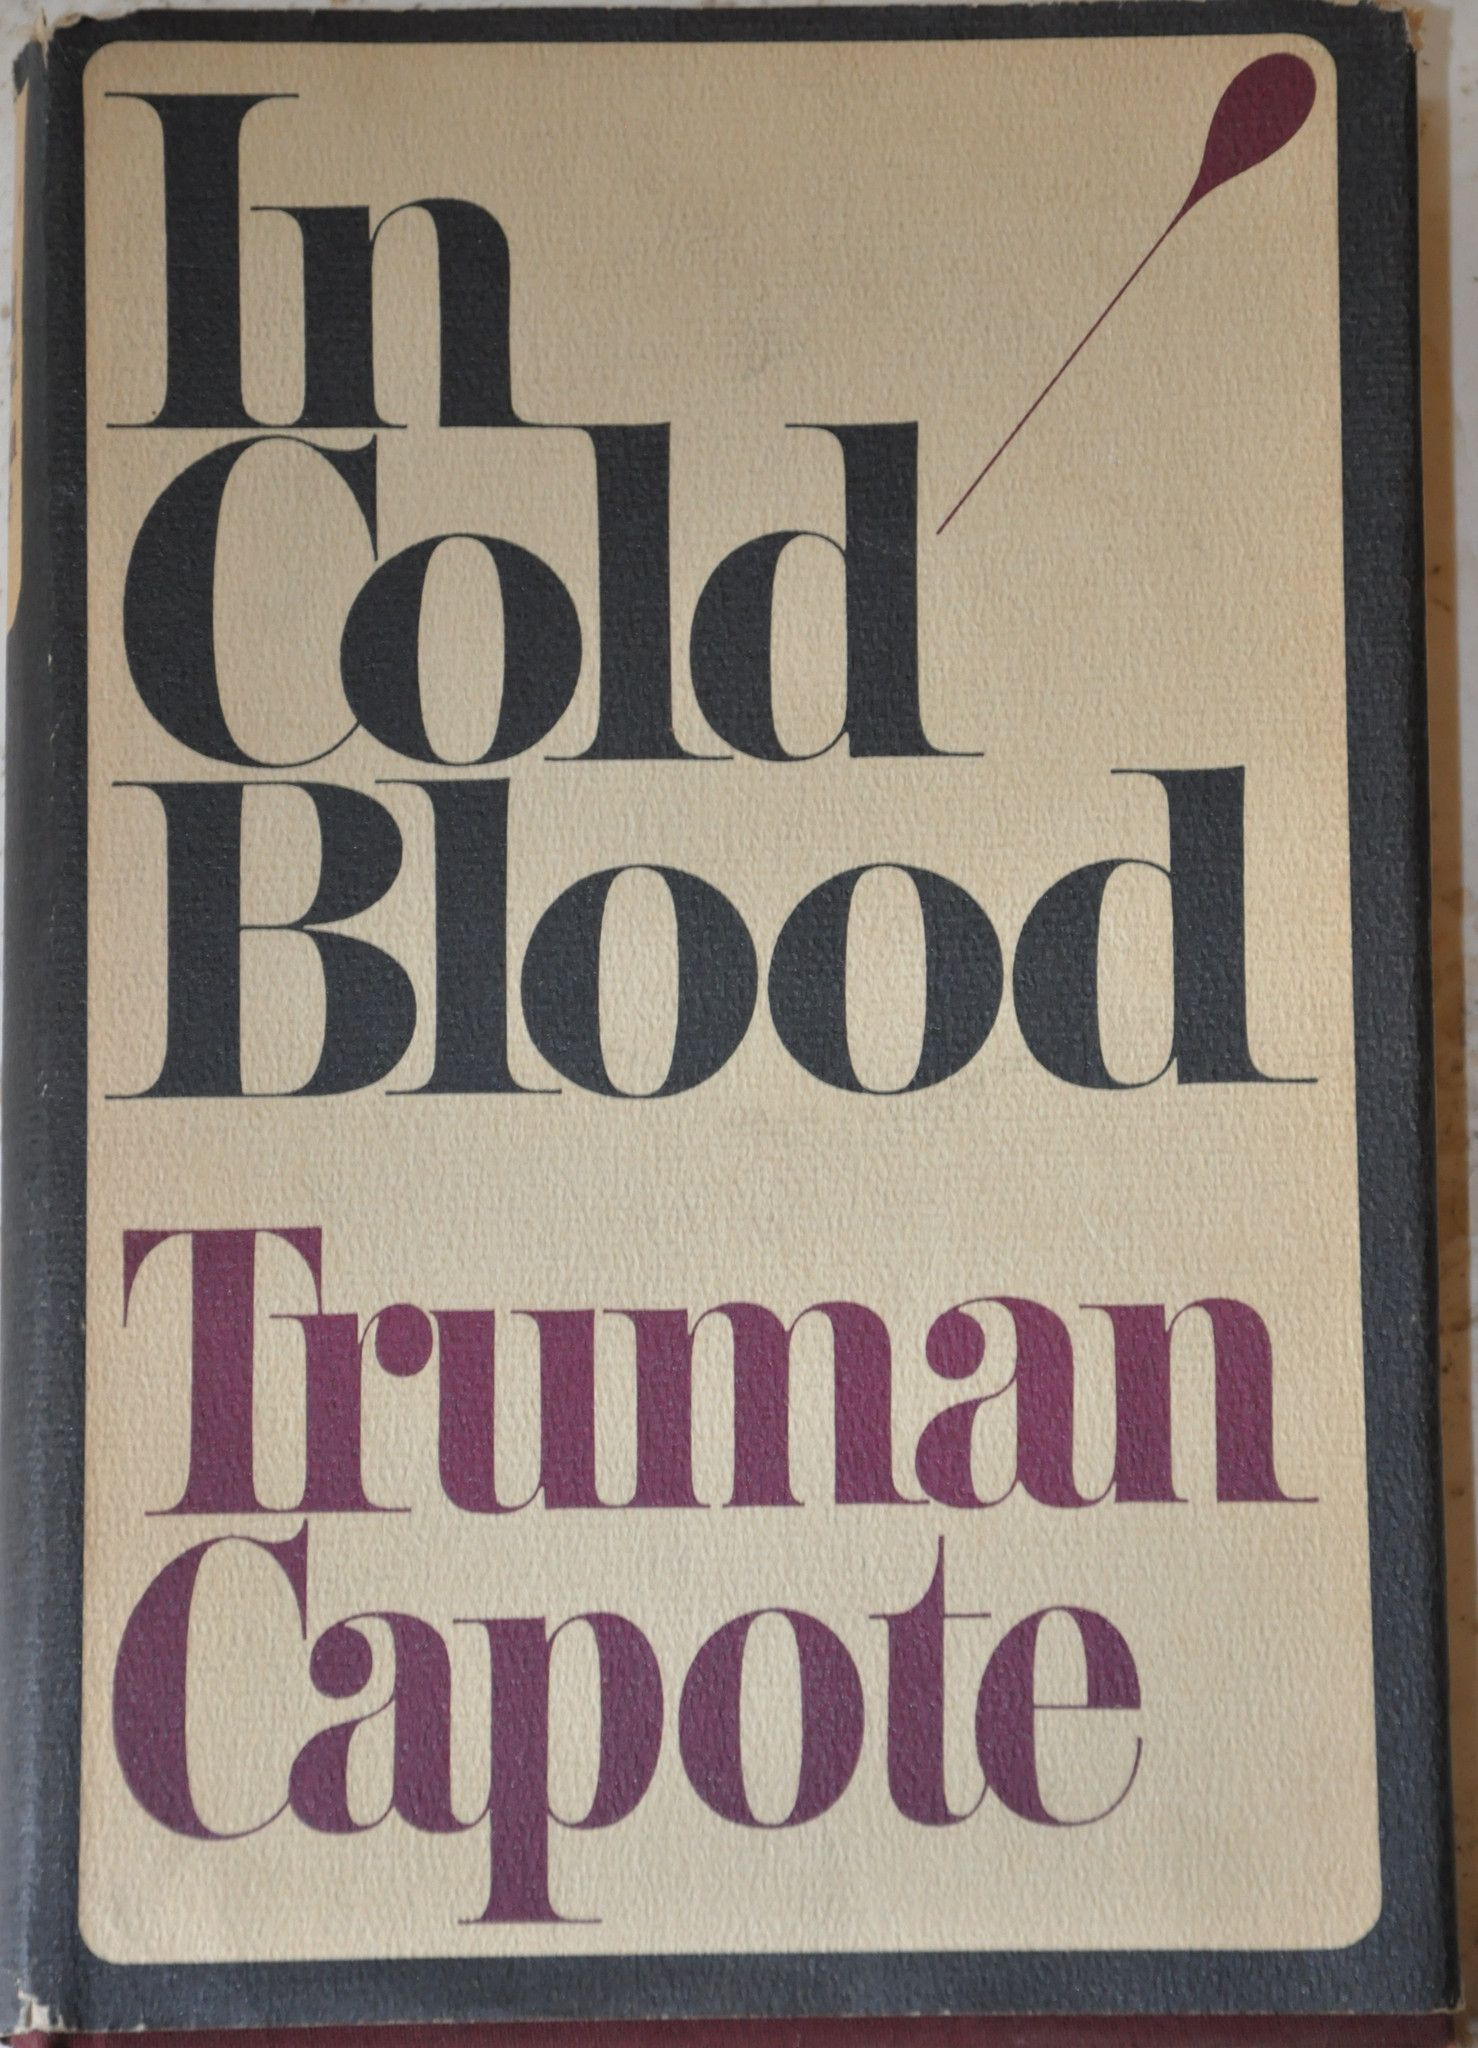 In Cold Blood by Truman Capote 1965 Hardcover with Dust Jacket, First Edition